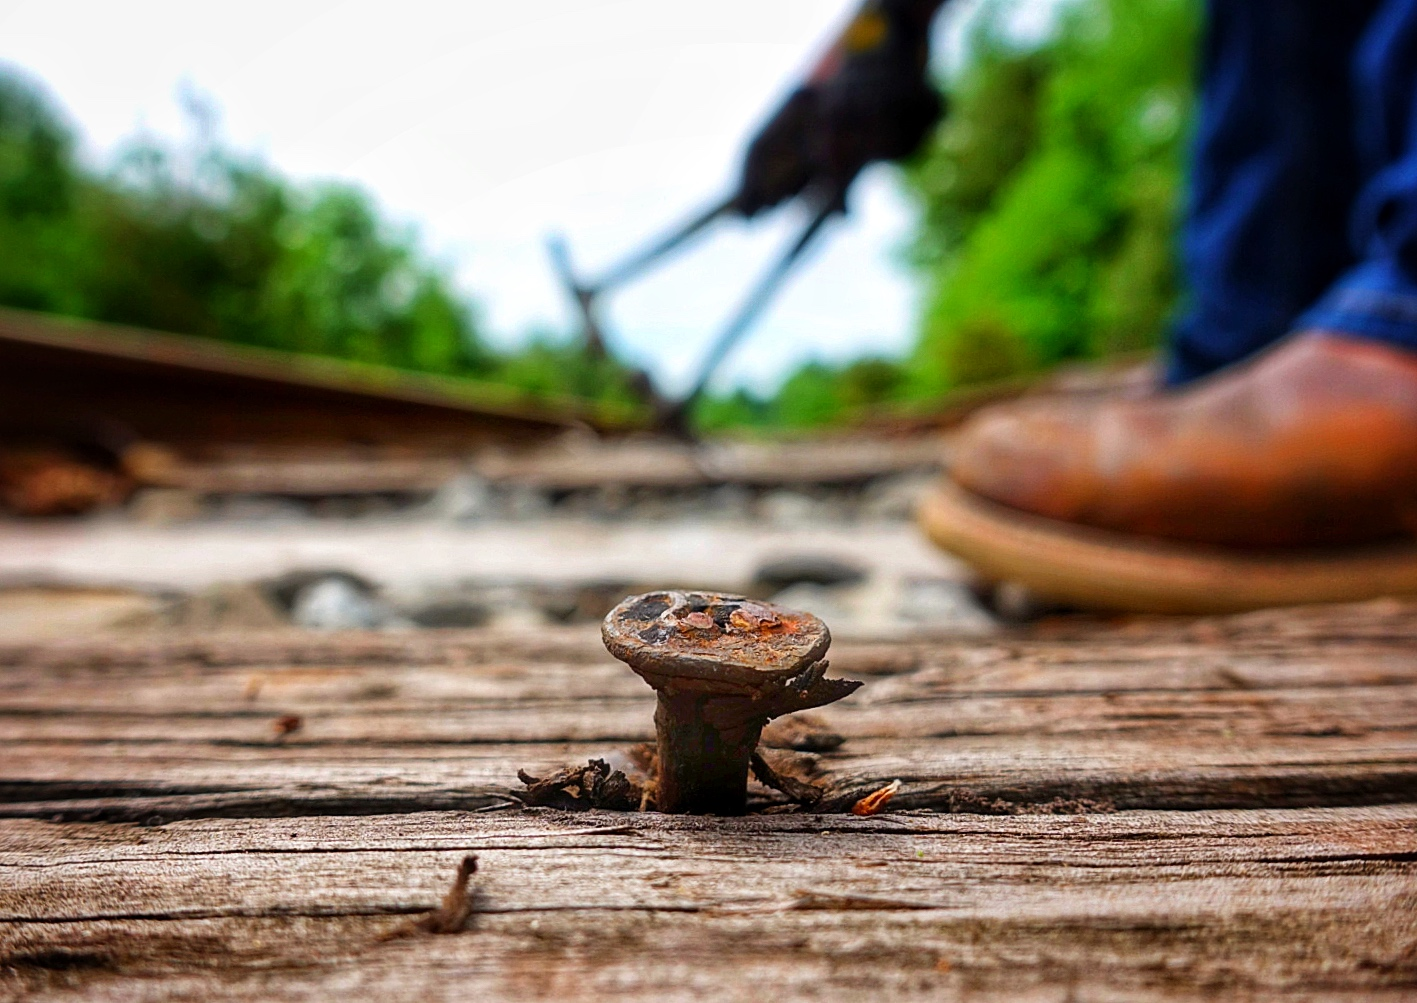 Date nail in a tie on a railroad track